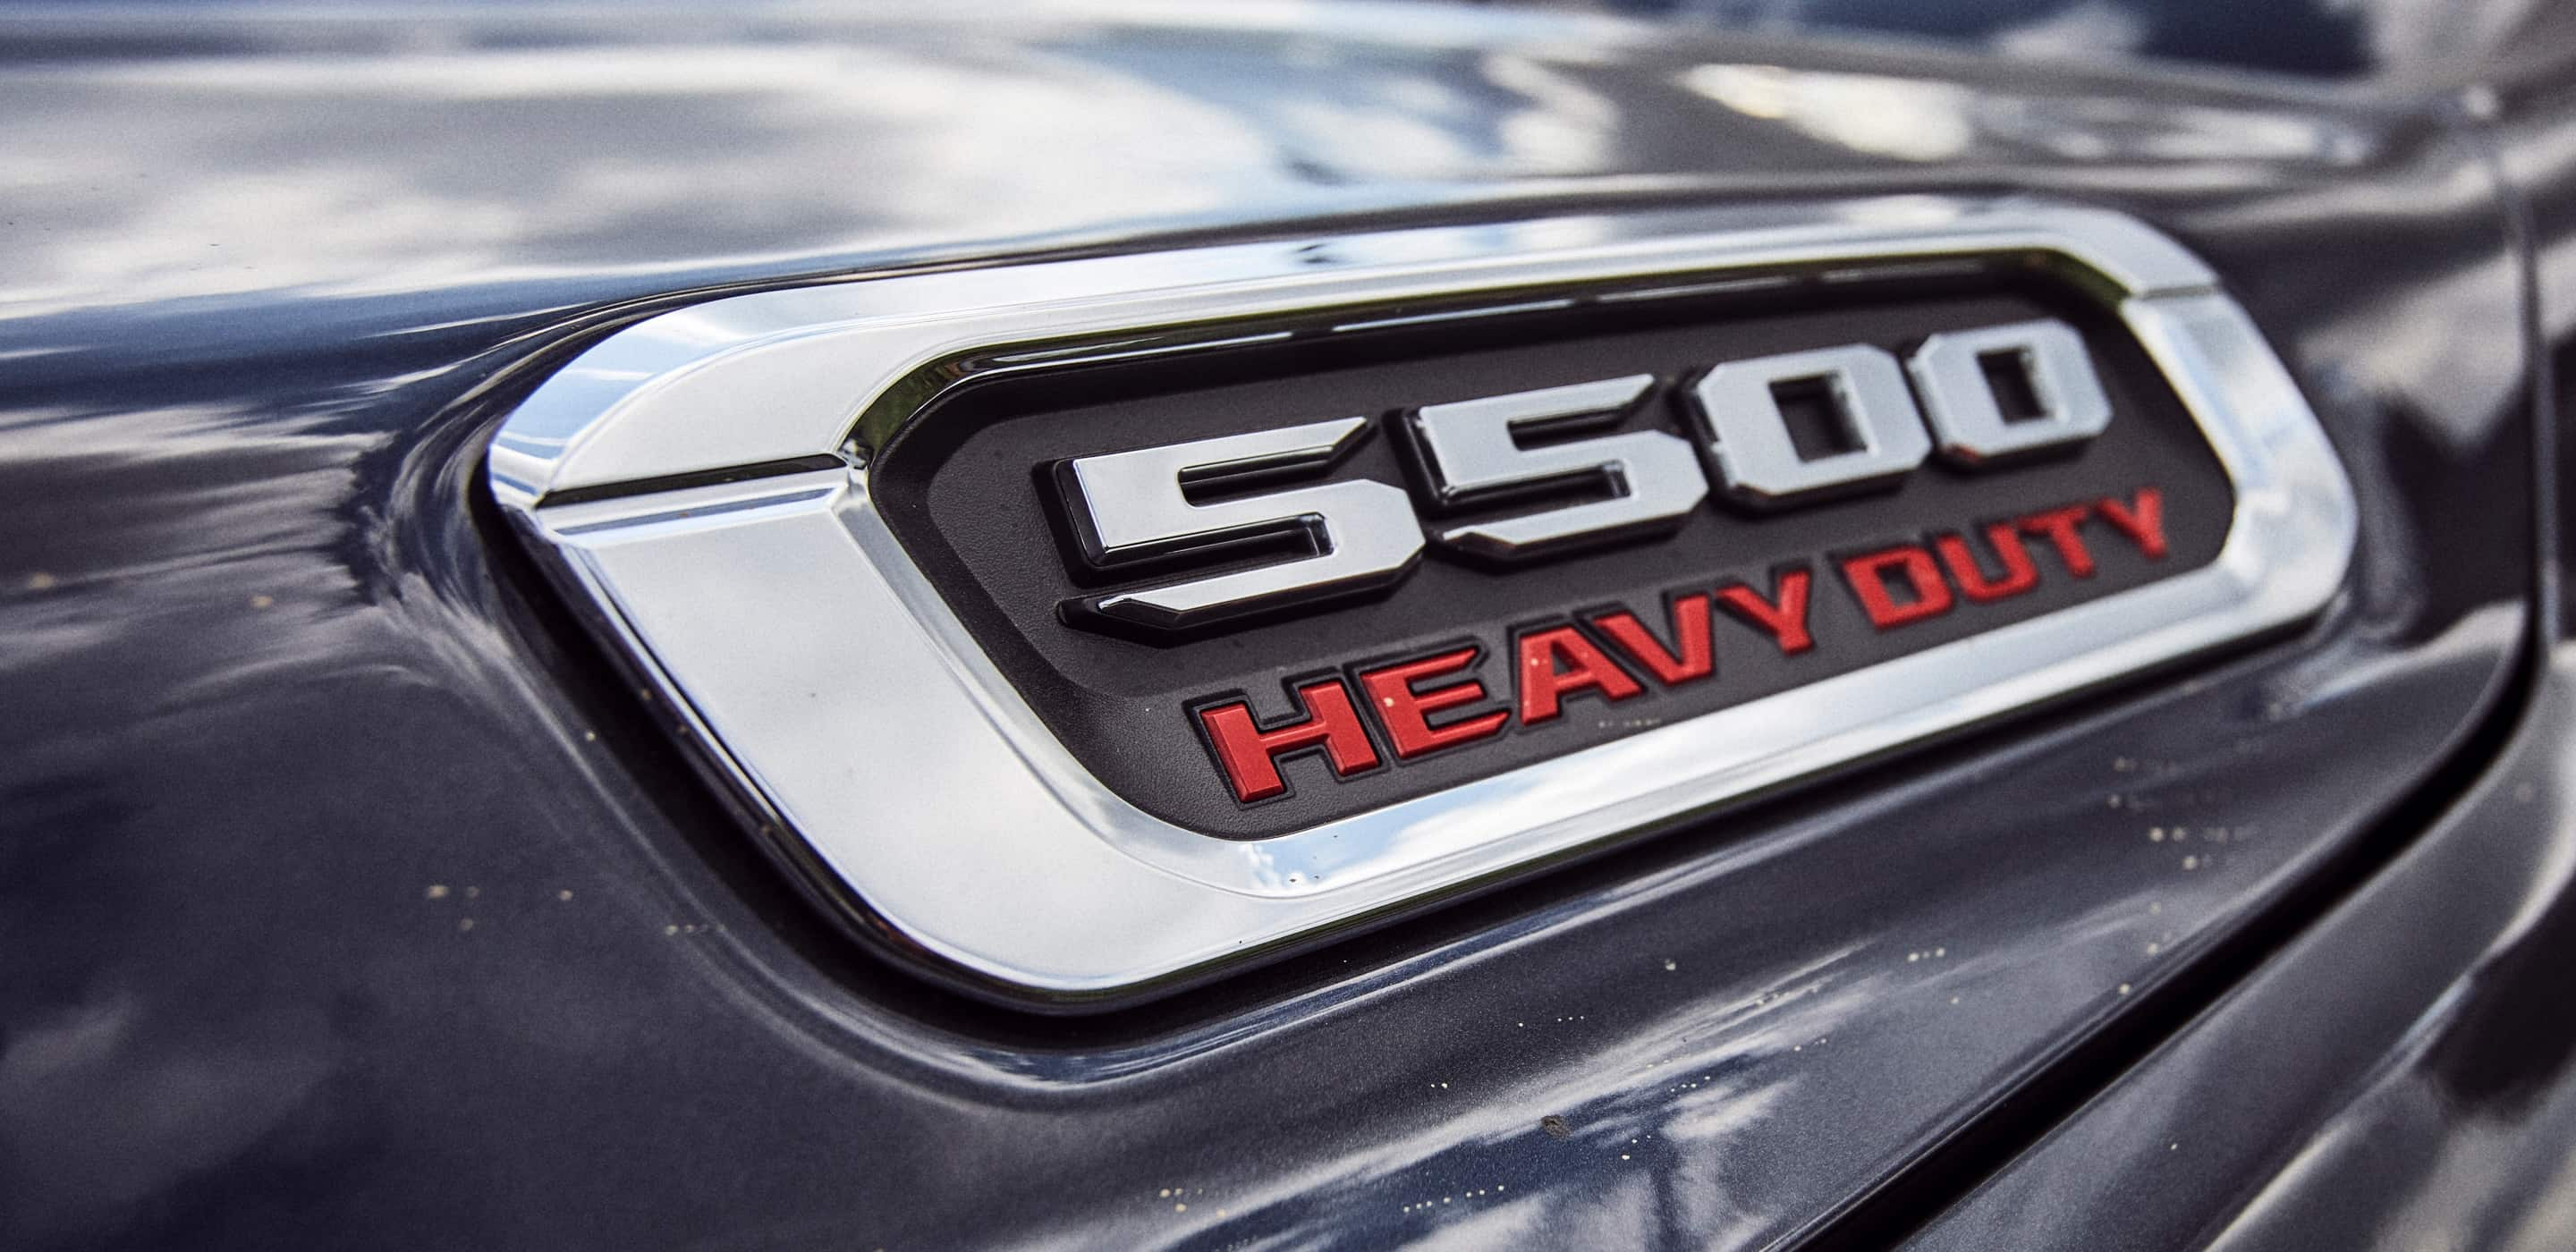 Display A close-up of the 5500 Heavy Duty badge on the 2020 Ram 5500 Chassis Cab.